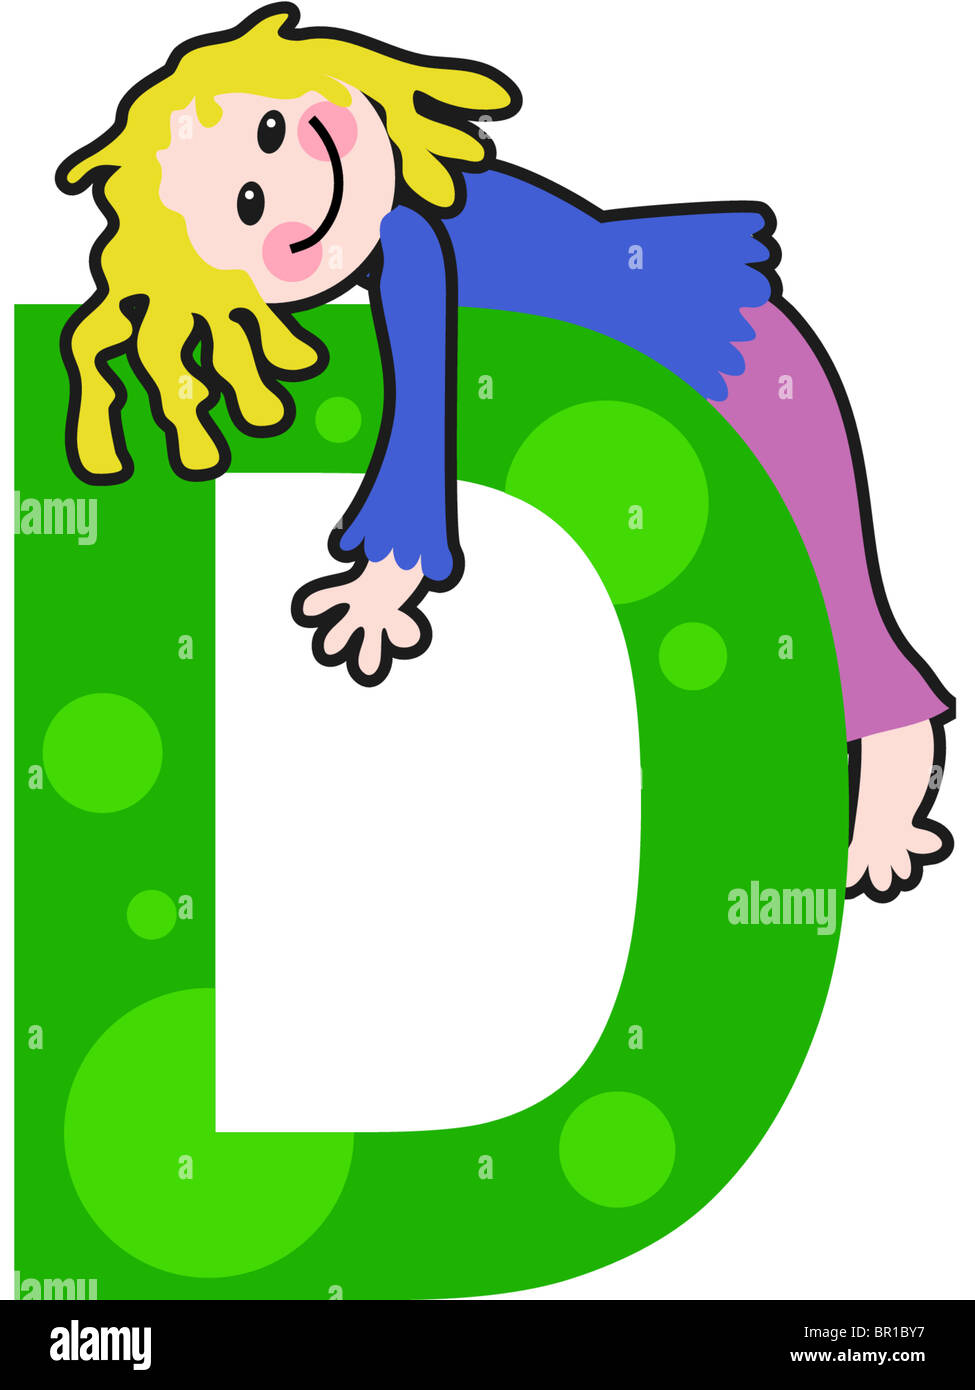 Cartoon Characters 7 Letters : Cartoon character with letter d ankaperla